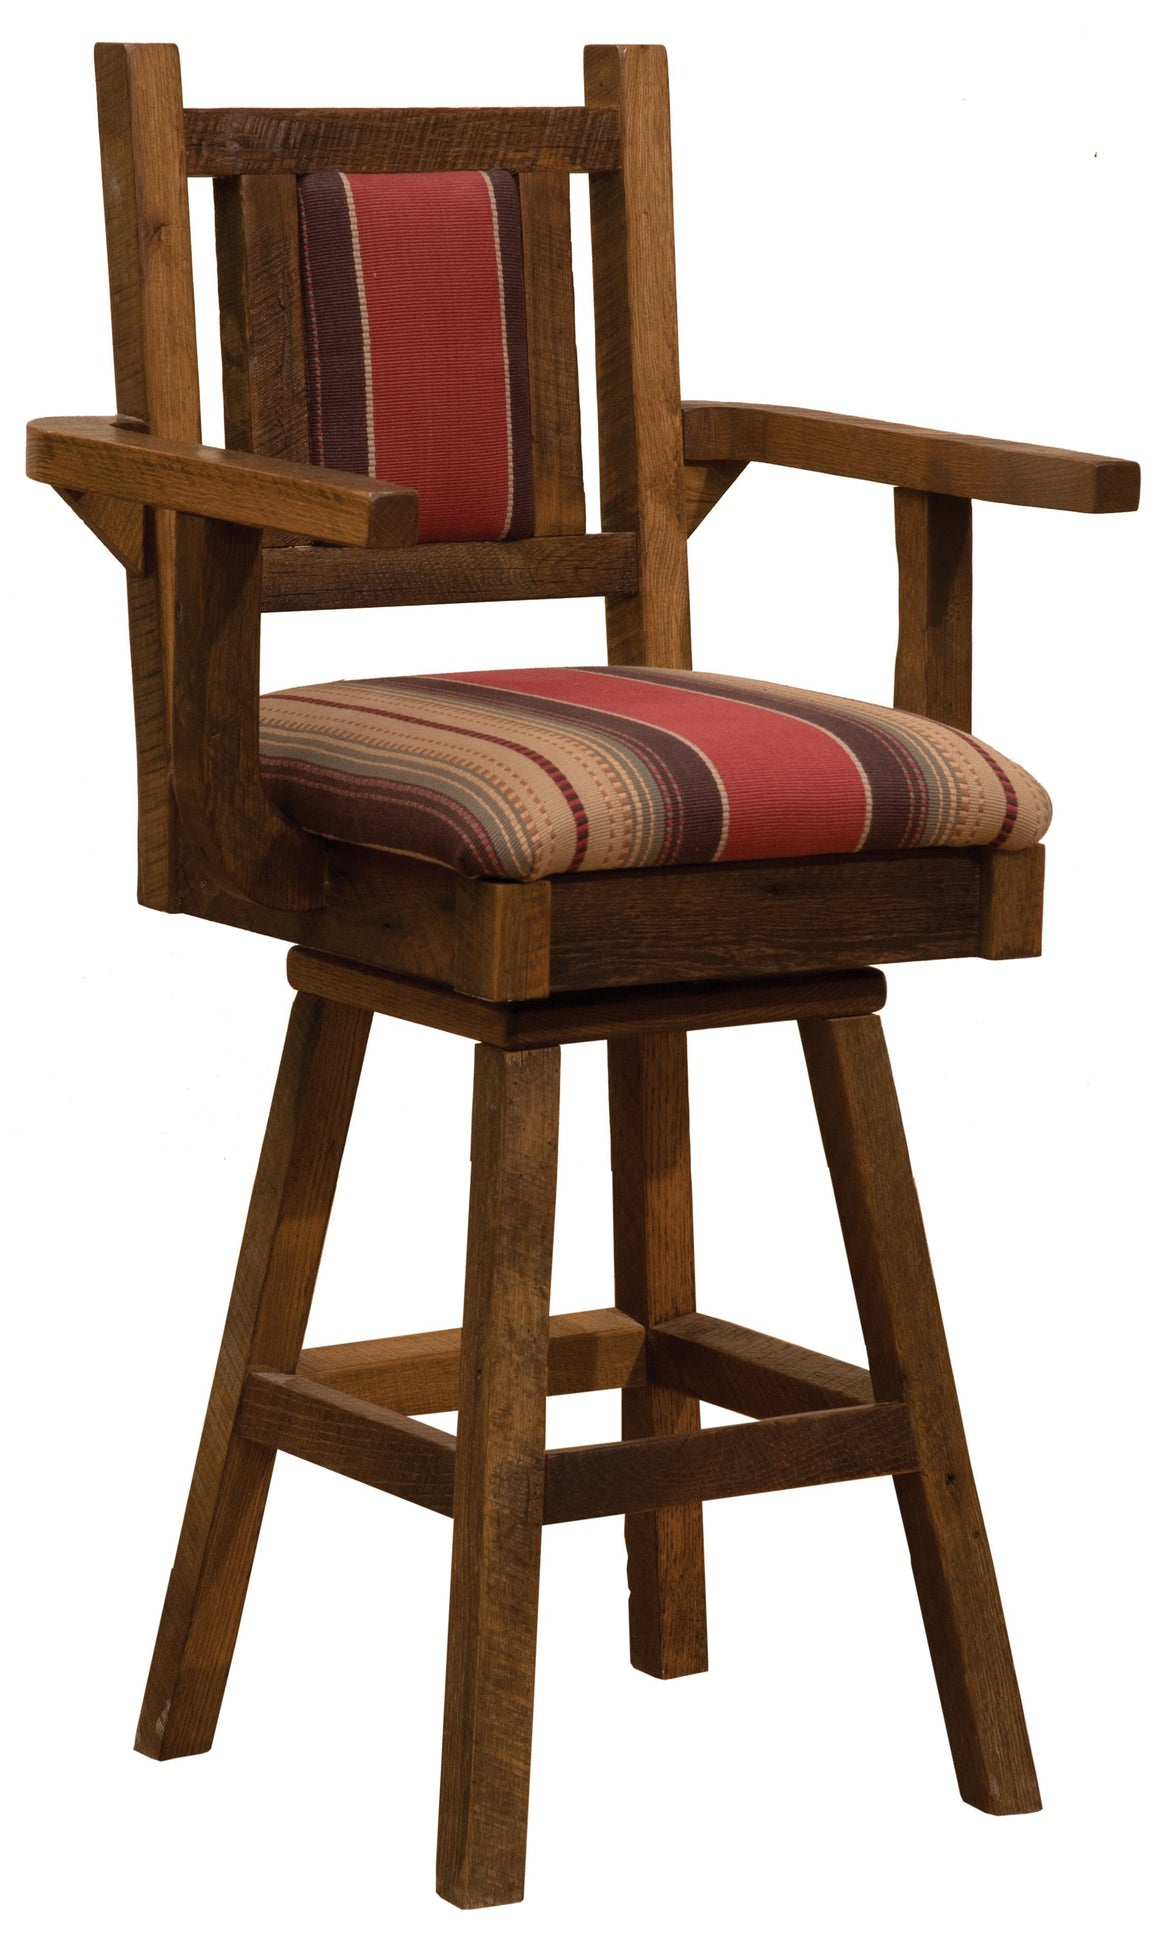 "Barnwood Swivel Upholstered Bar Stool with Back and Arms - 30"" Seat Height-Rustic Deco Incorporated"